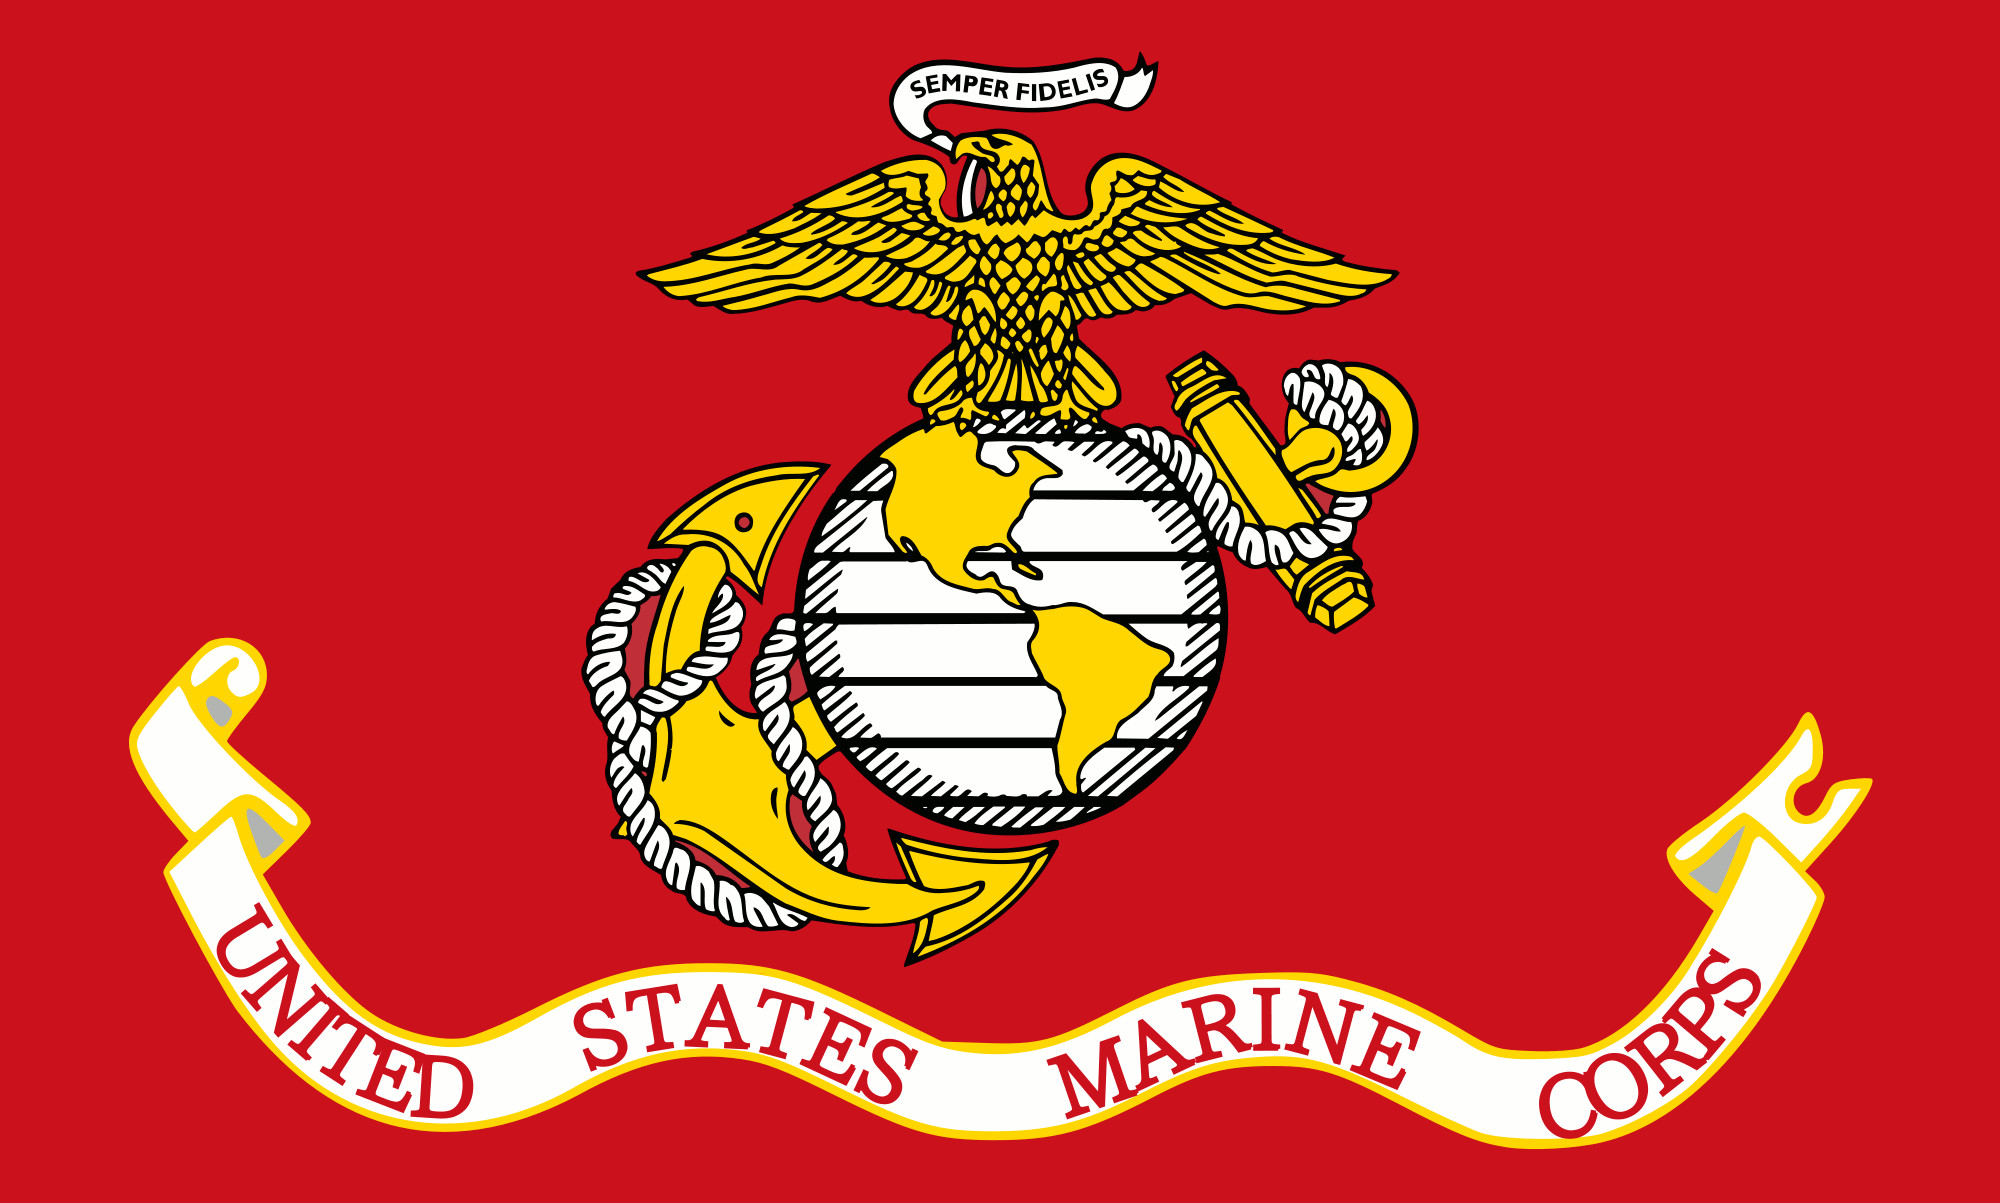 2000x1203 United States Marine Corps Wallpaper | Wallpaper Download